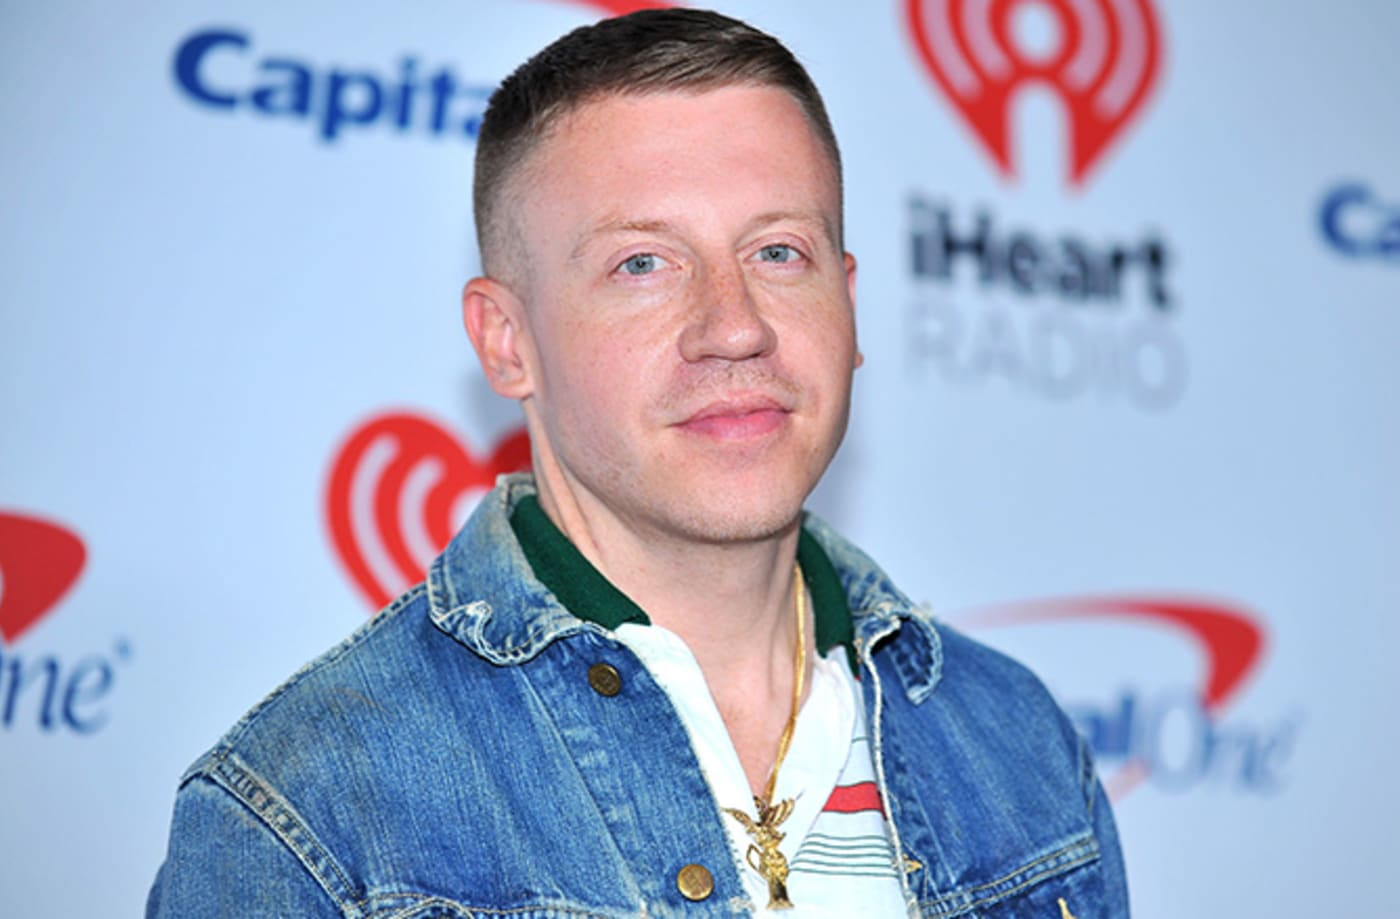 This is a photo of Macklemore.